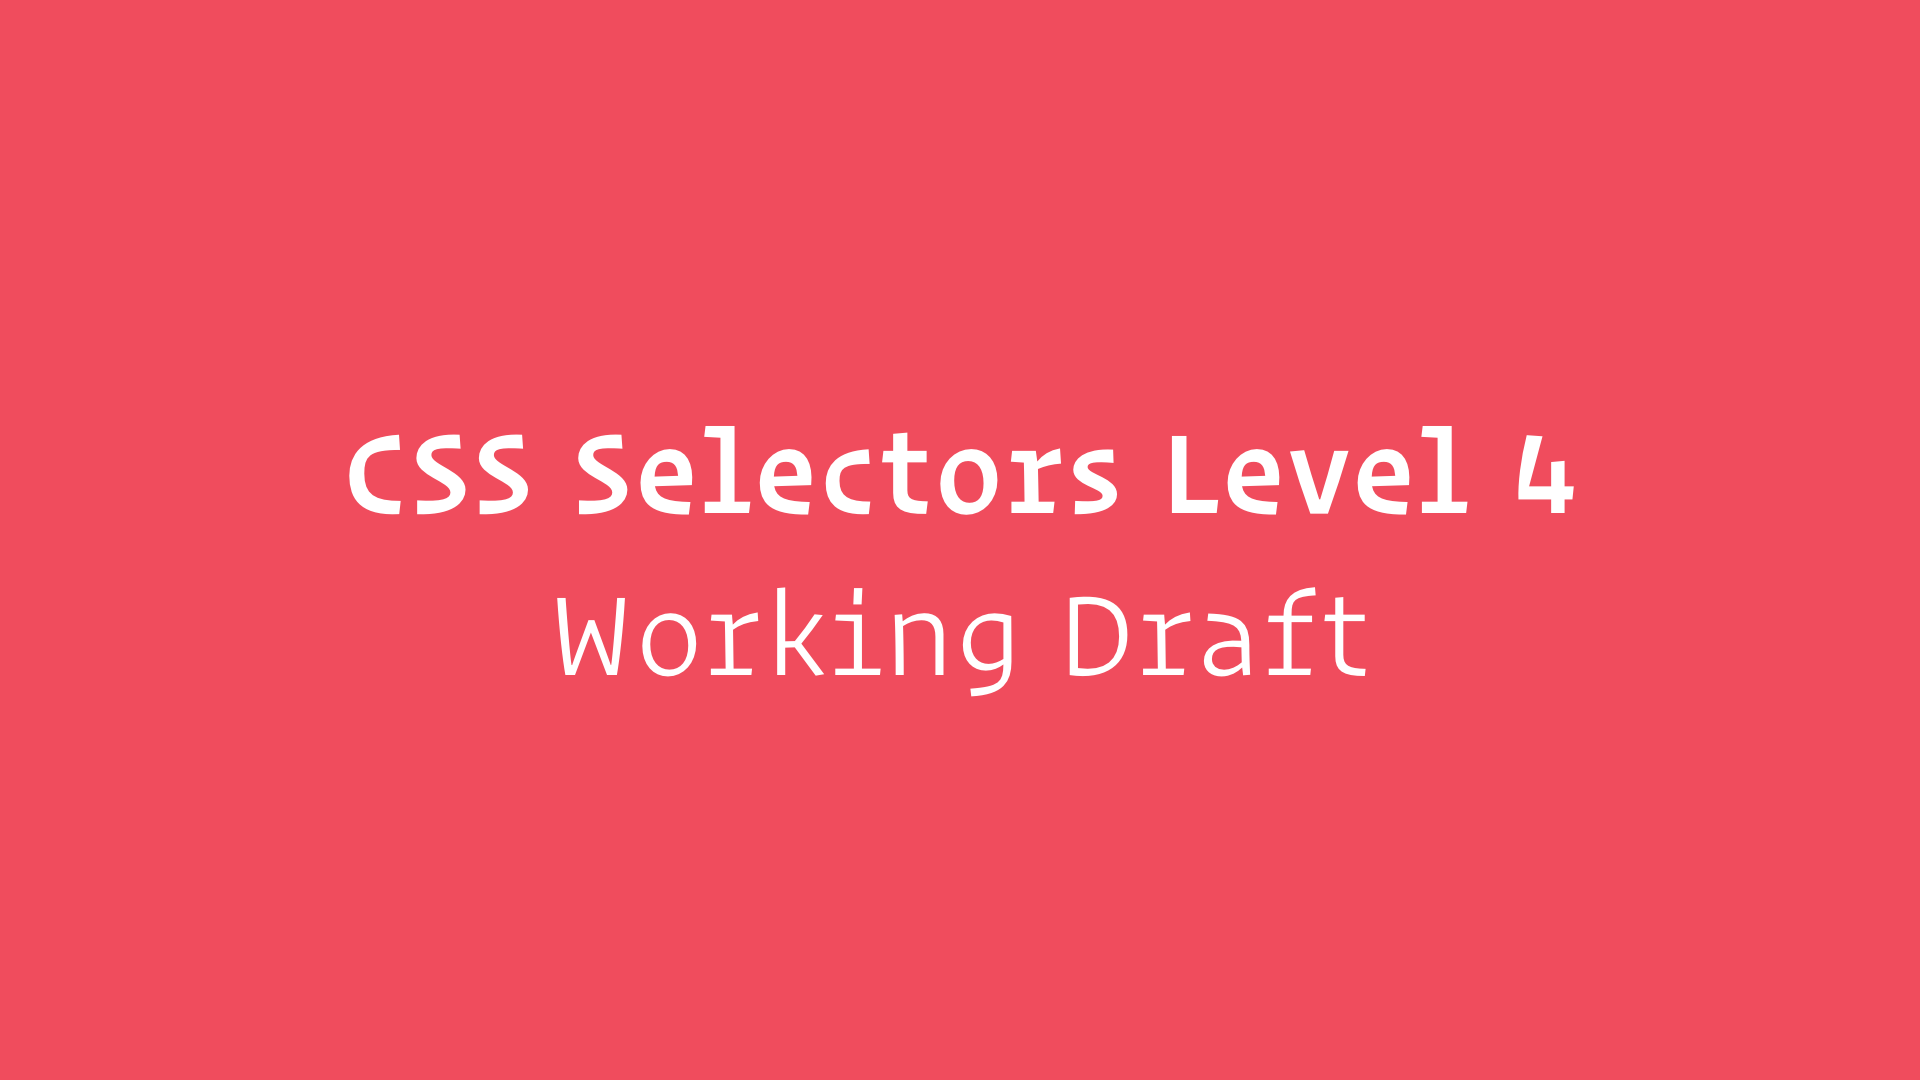 slide: CSS Selectors Level 4 Working Draft